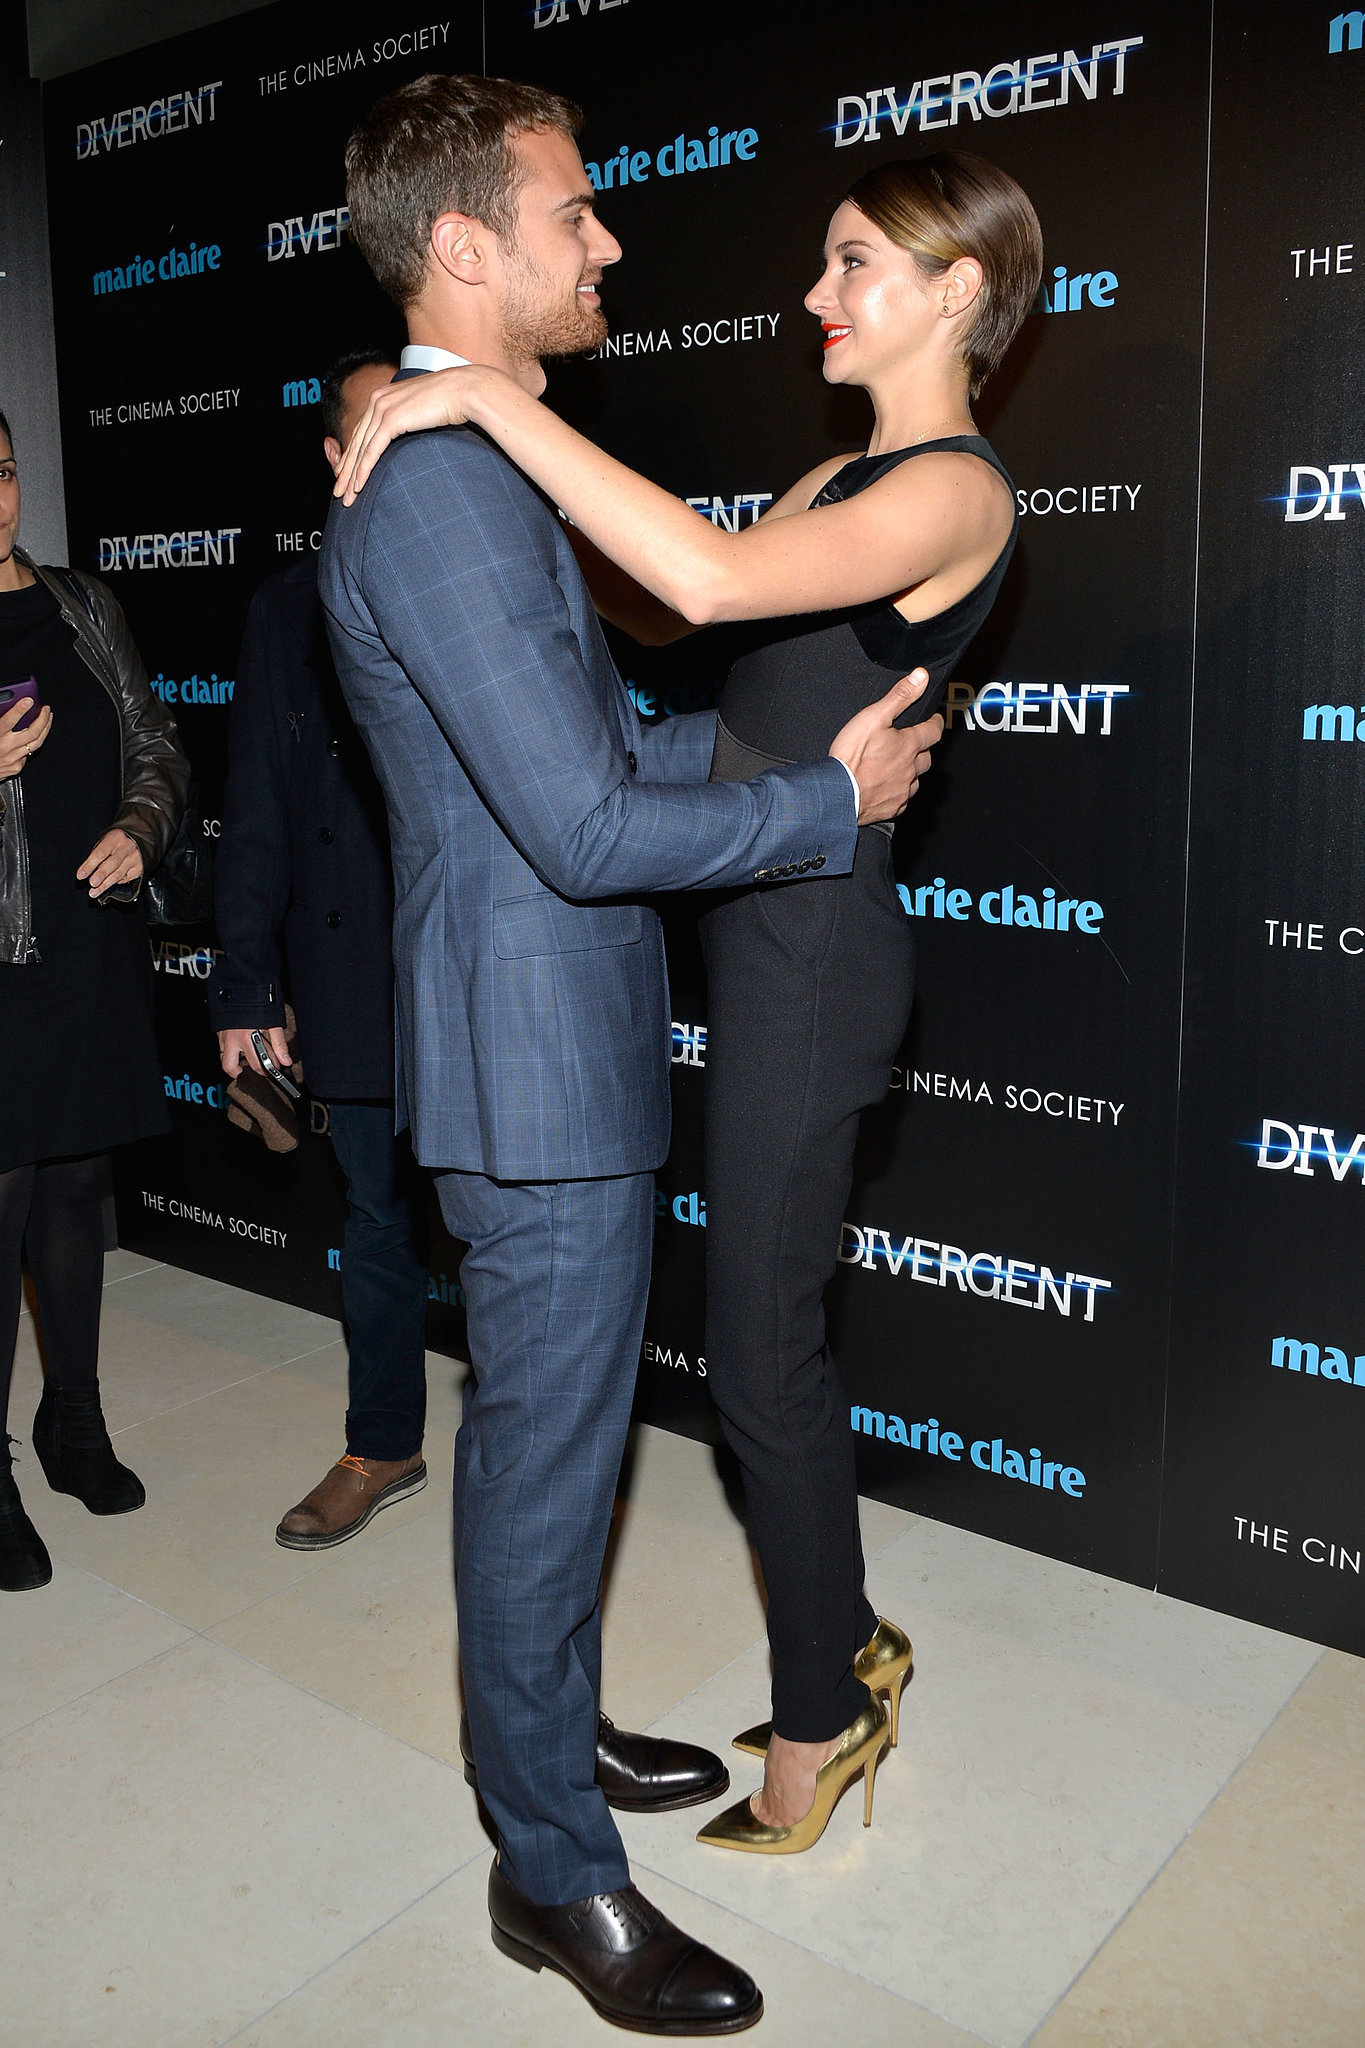 Shailene Woodley and Theo James shared a sweet moment at a screening